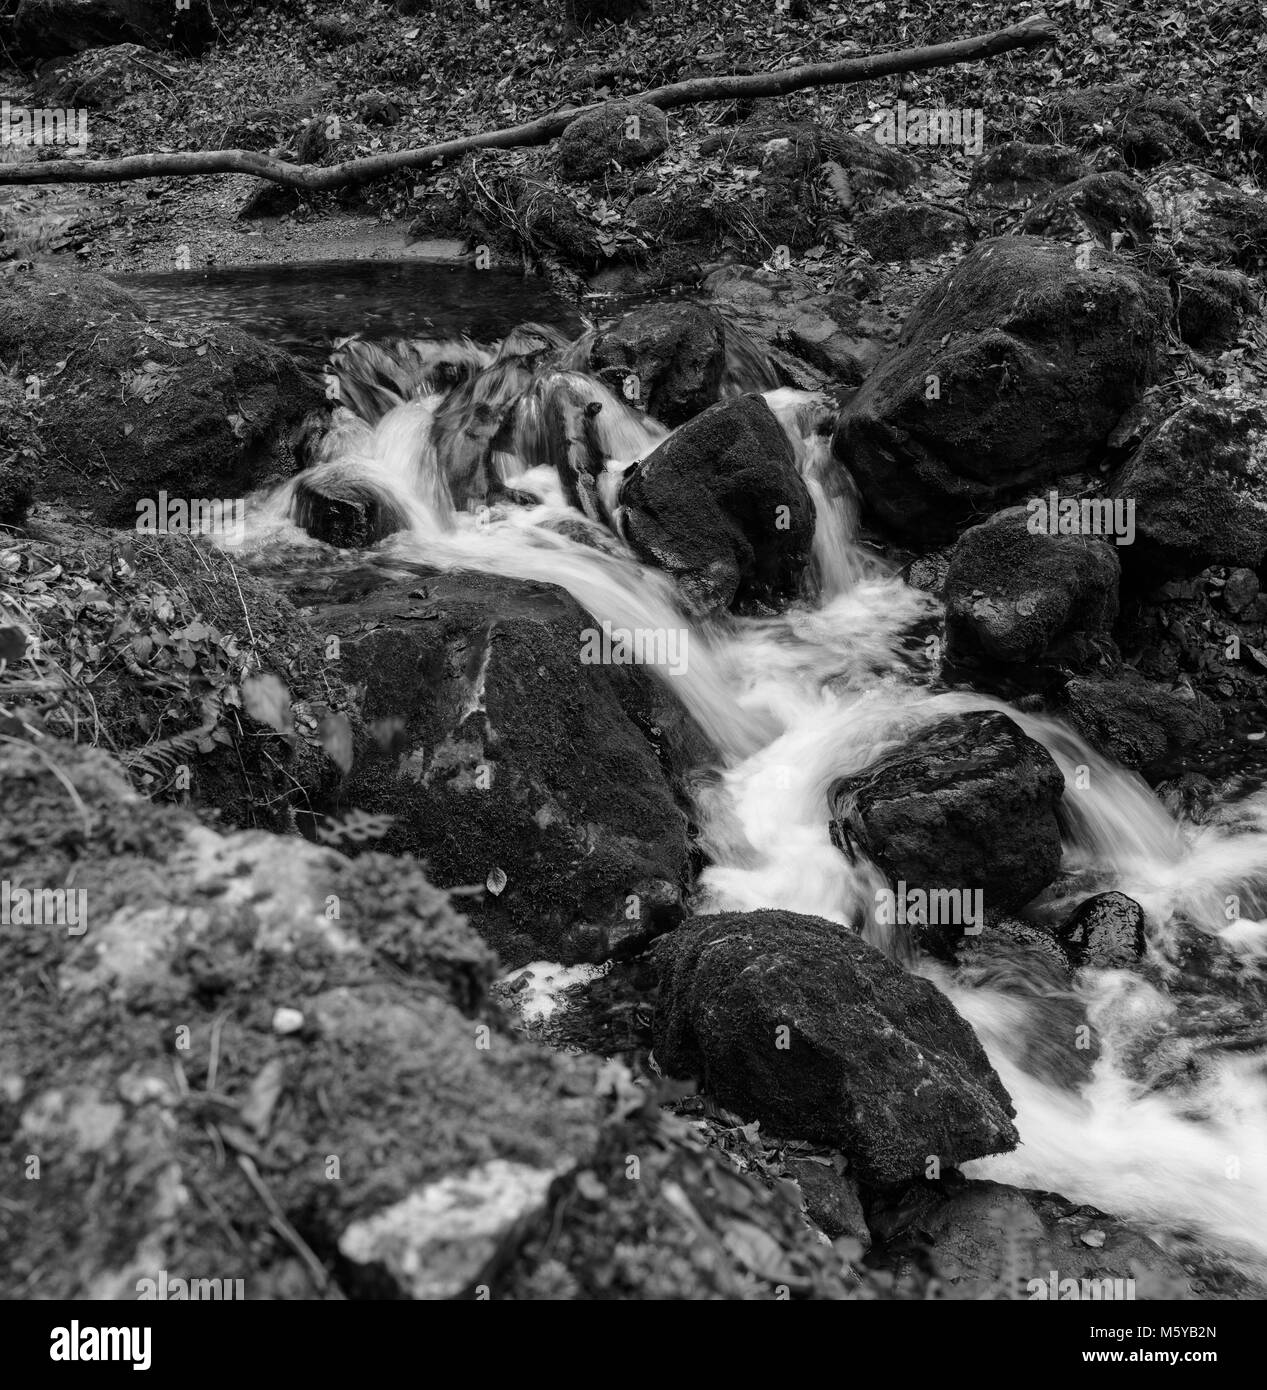 Monochrome outdoor long exposure of a small stream / creek in winter / fall forest with stones,trees,moss,autumnal - Stock Image